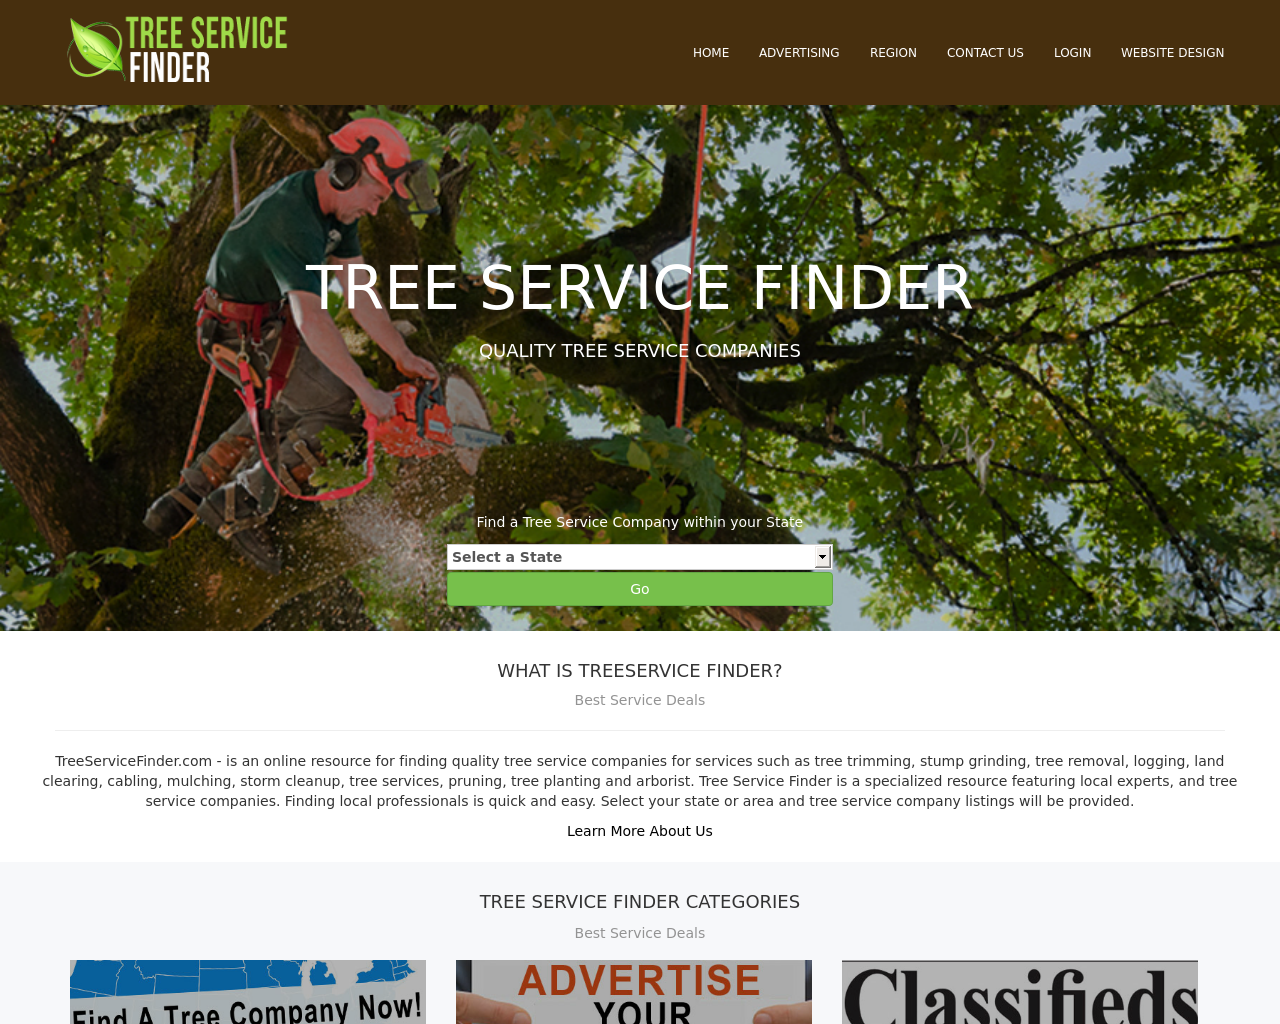 Treeservicefinder-Advertising-Reviews-Pricing